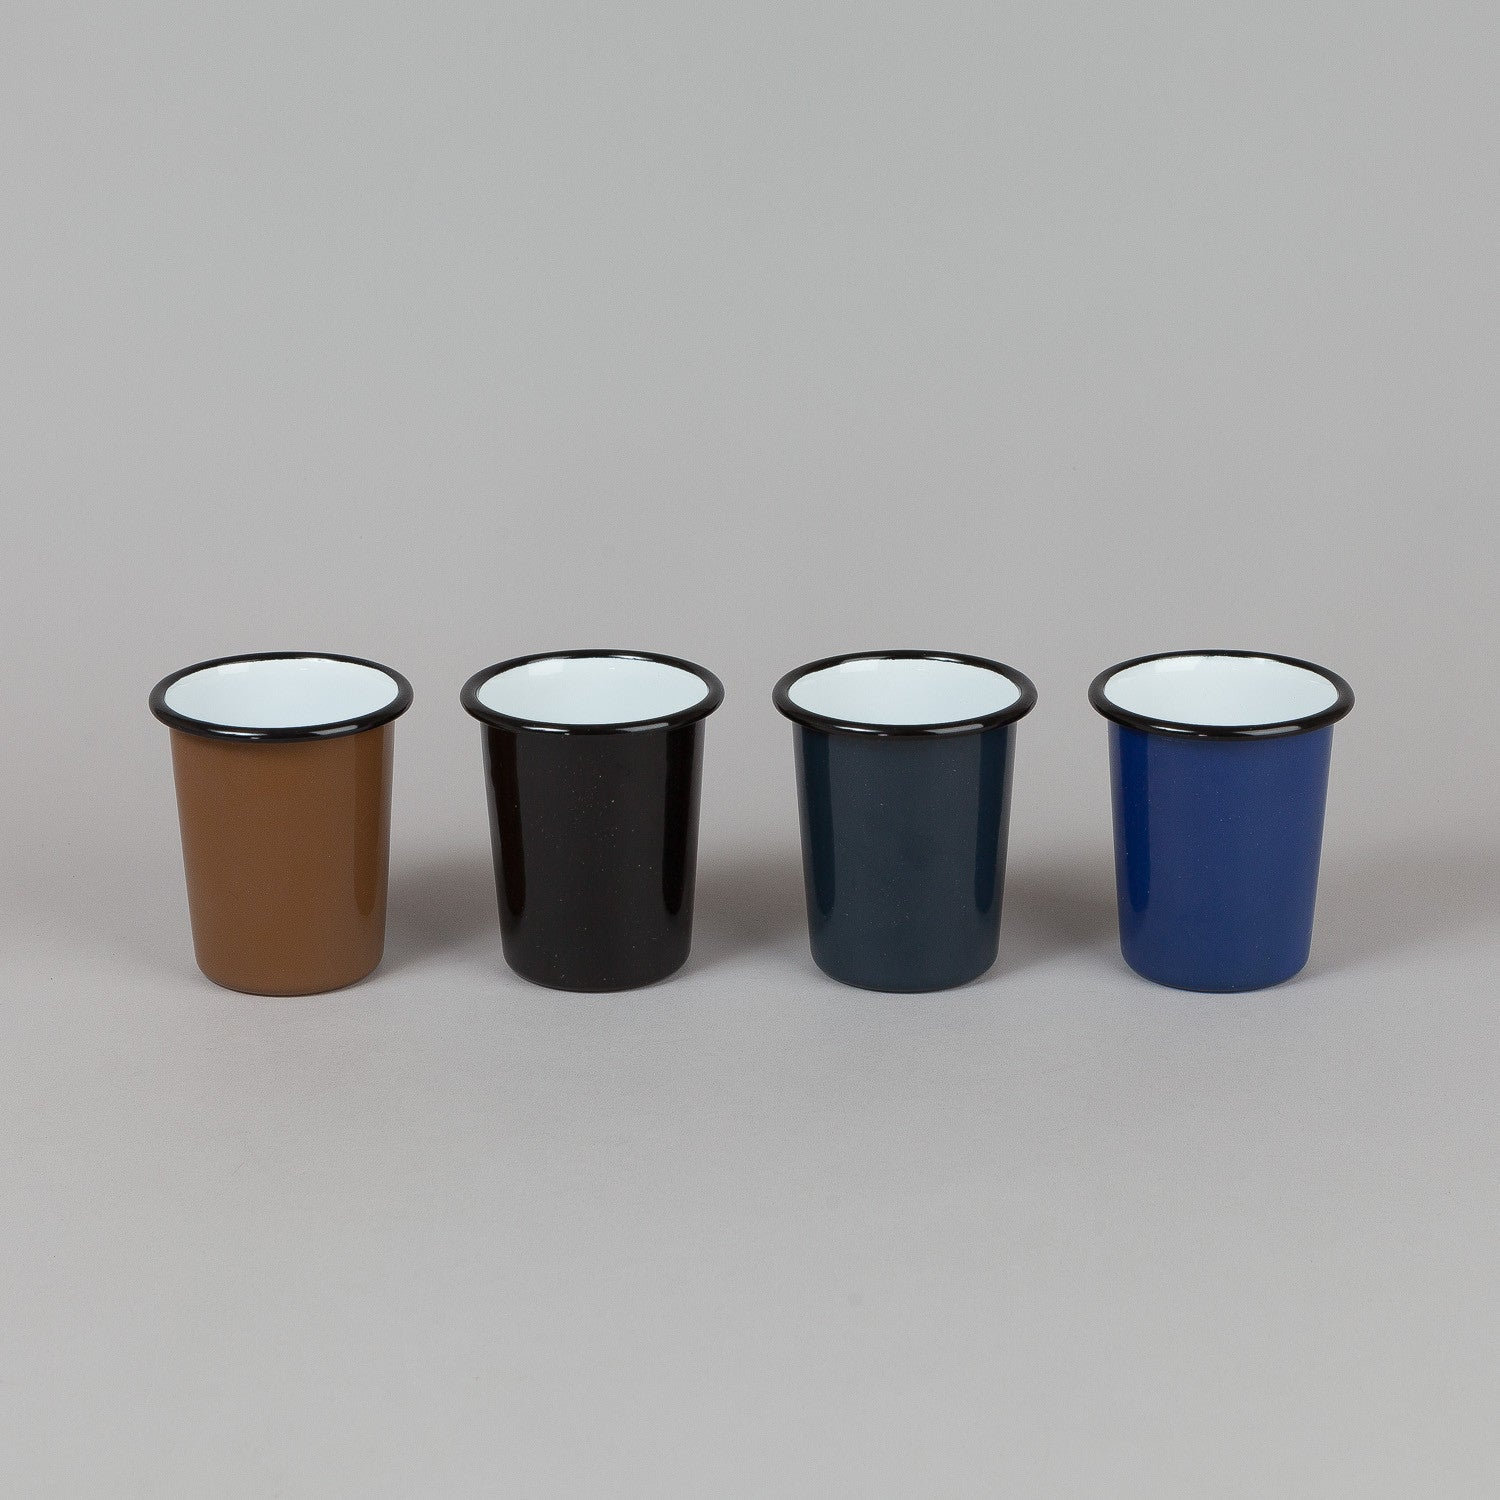 Carhartt Enamel Tumblers - 4 Pack - Assorted Colours